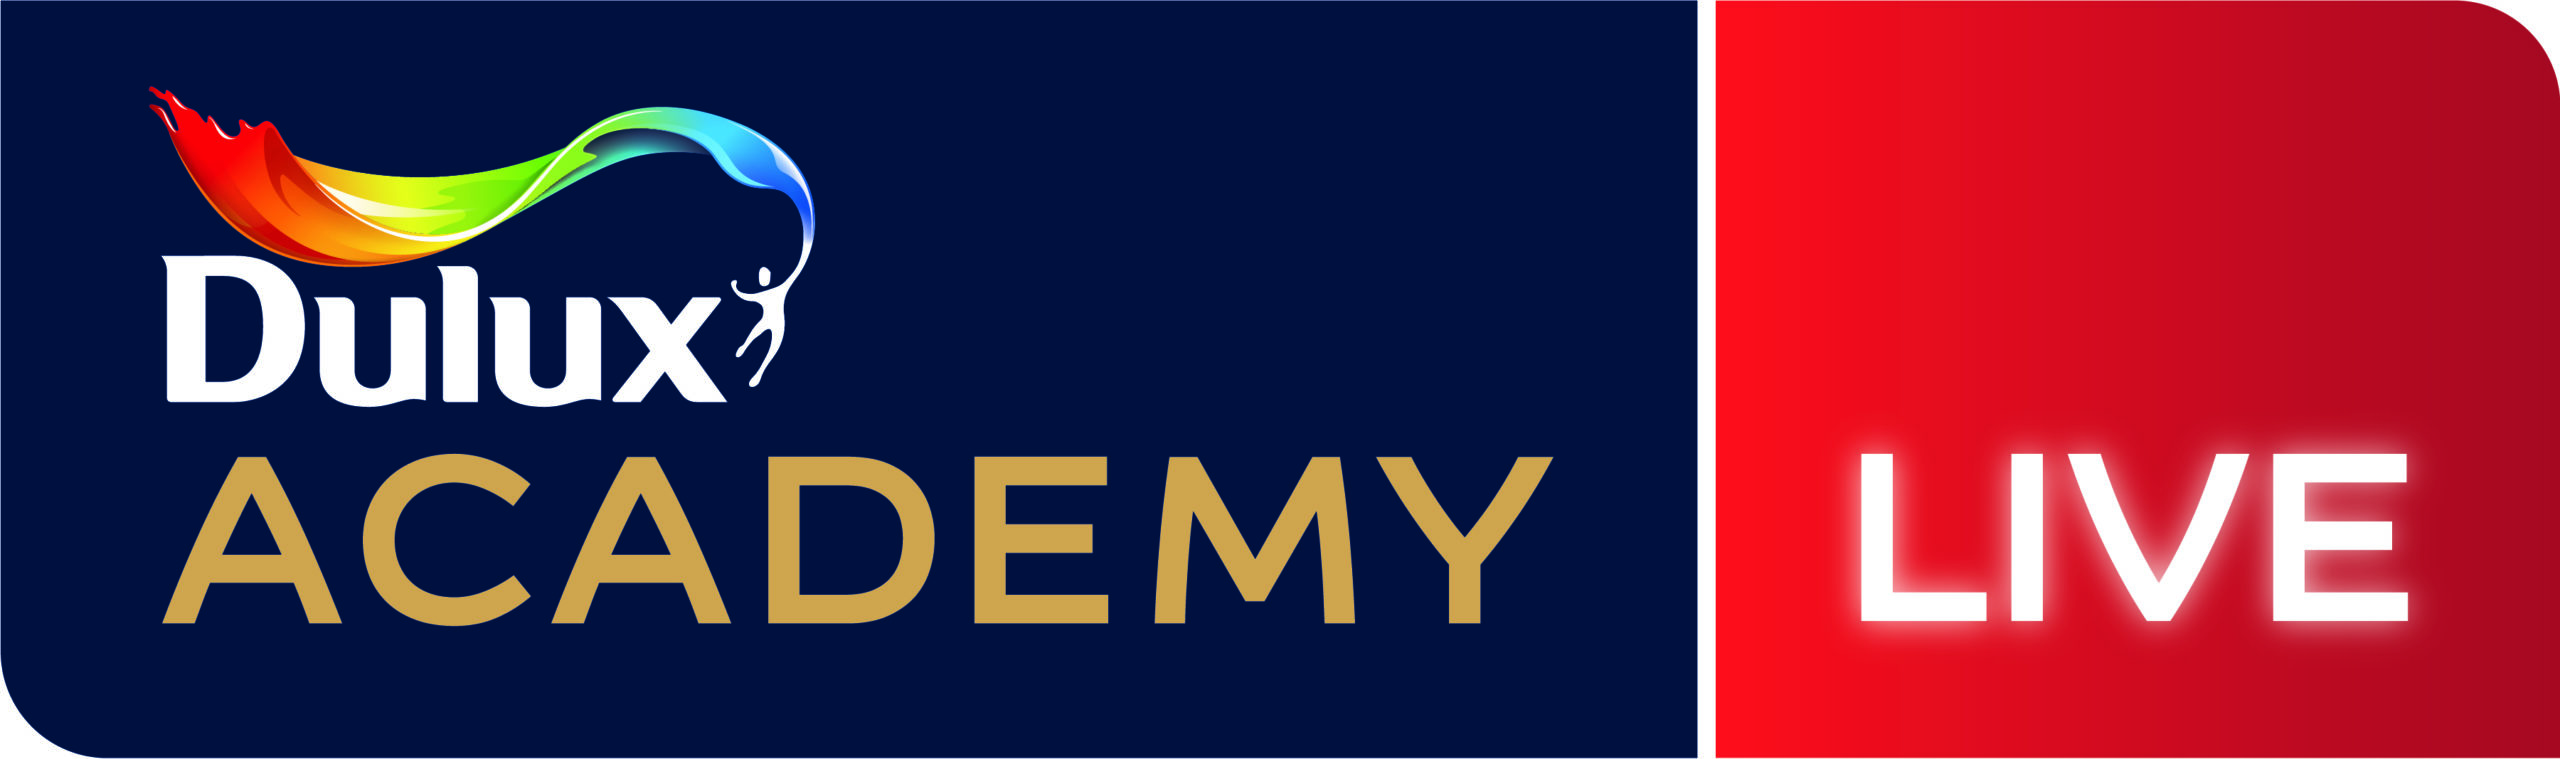 The Dulux Academy aims to support decorators during lockdown and launches live training sessions, all for FREE. Time to brush up on your decorating skills.